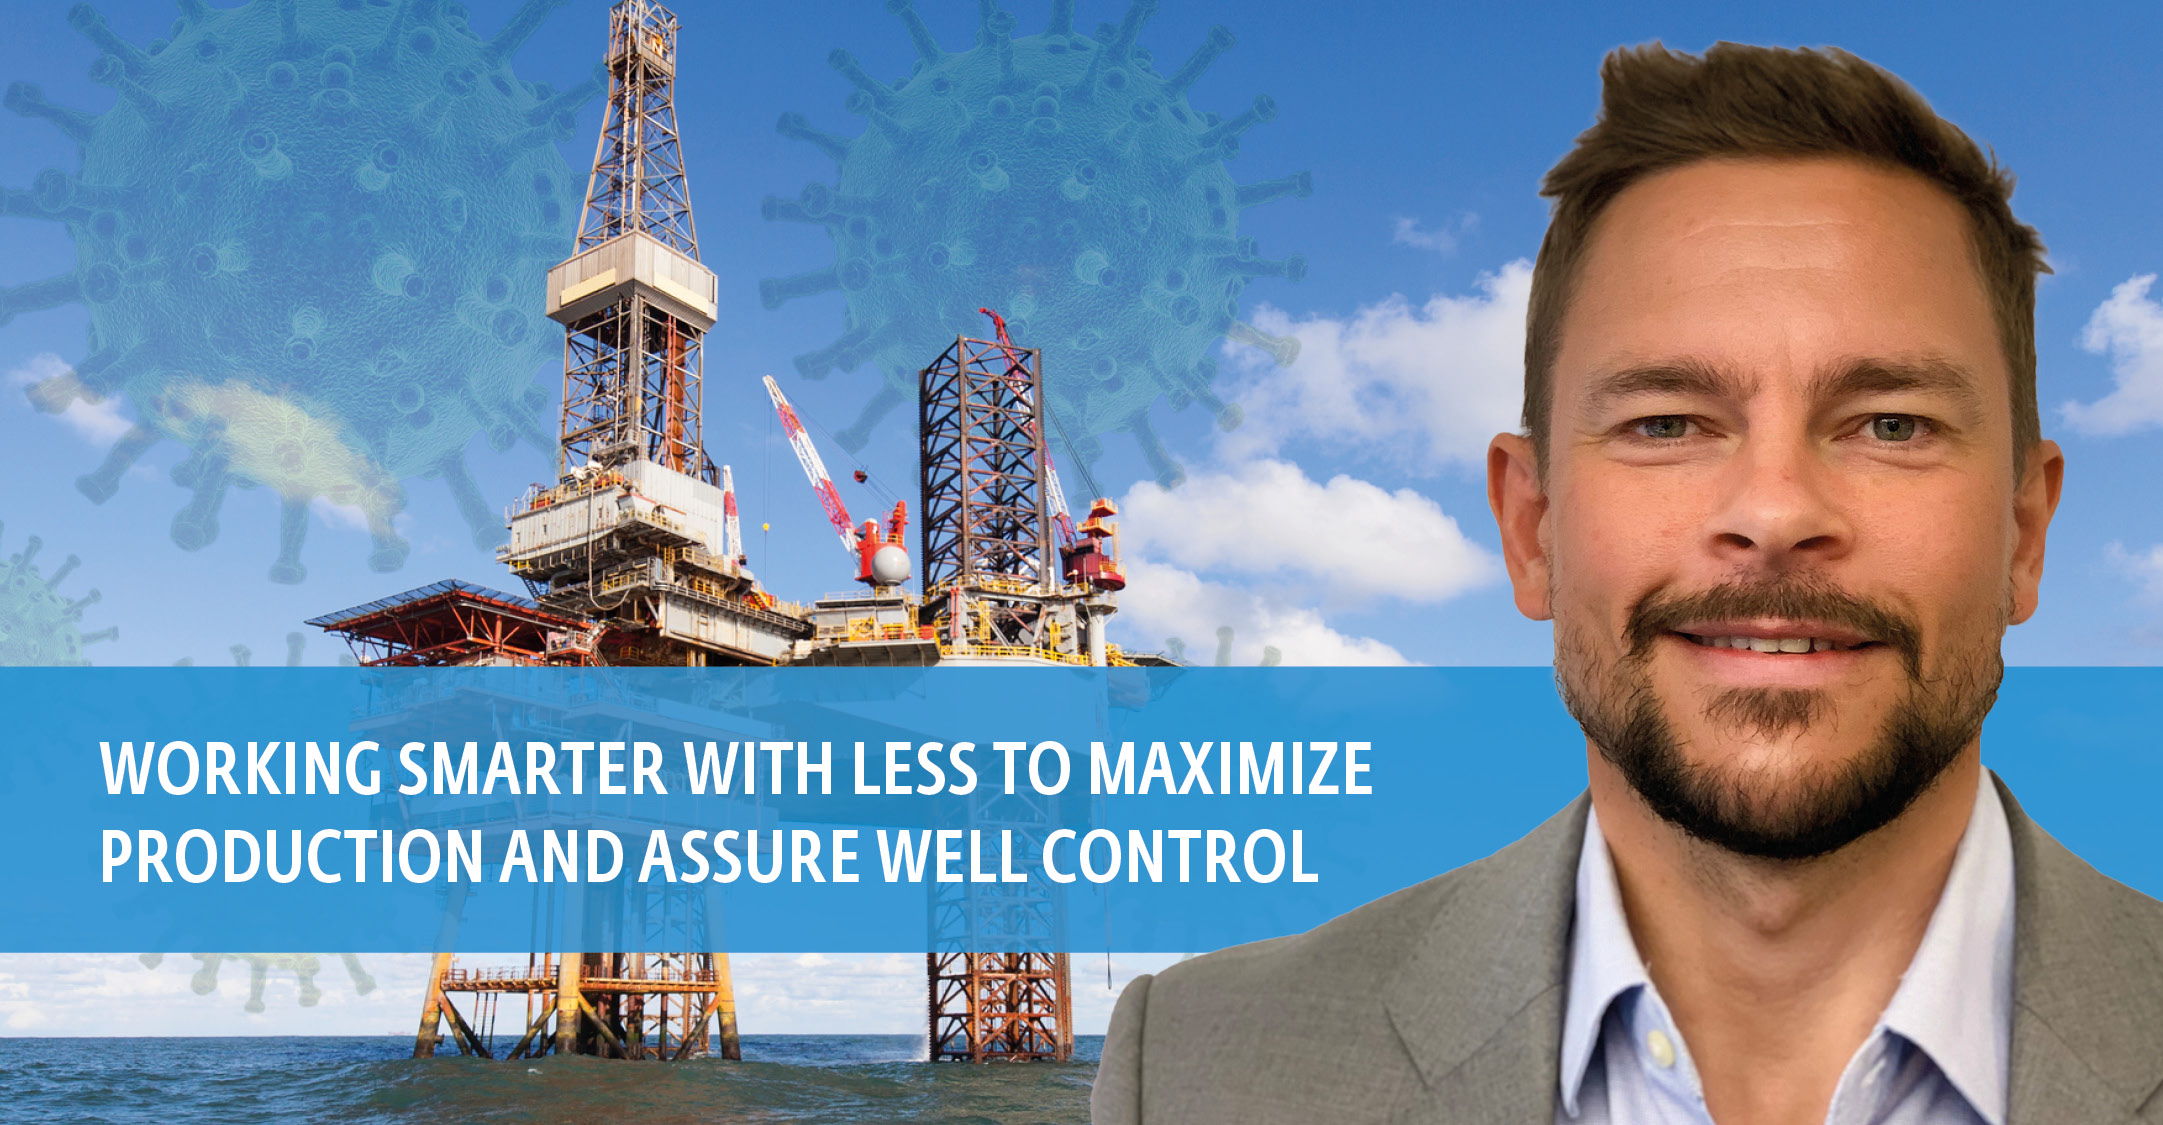 Working smarter with less to maximize production and assure well control